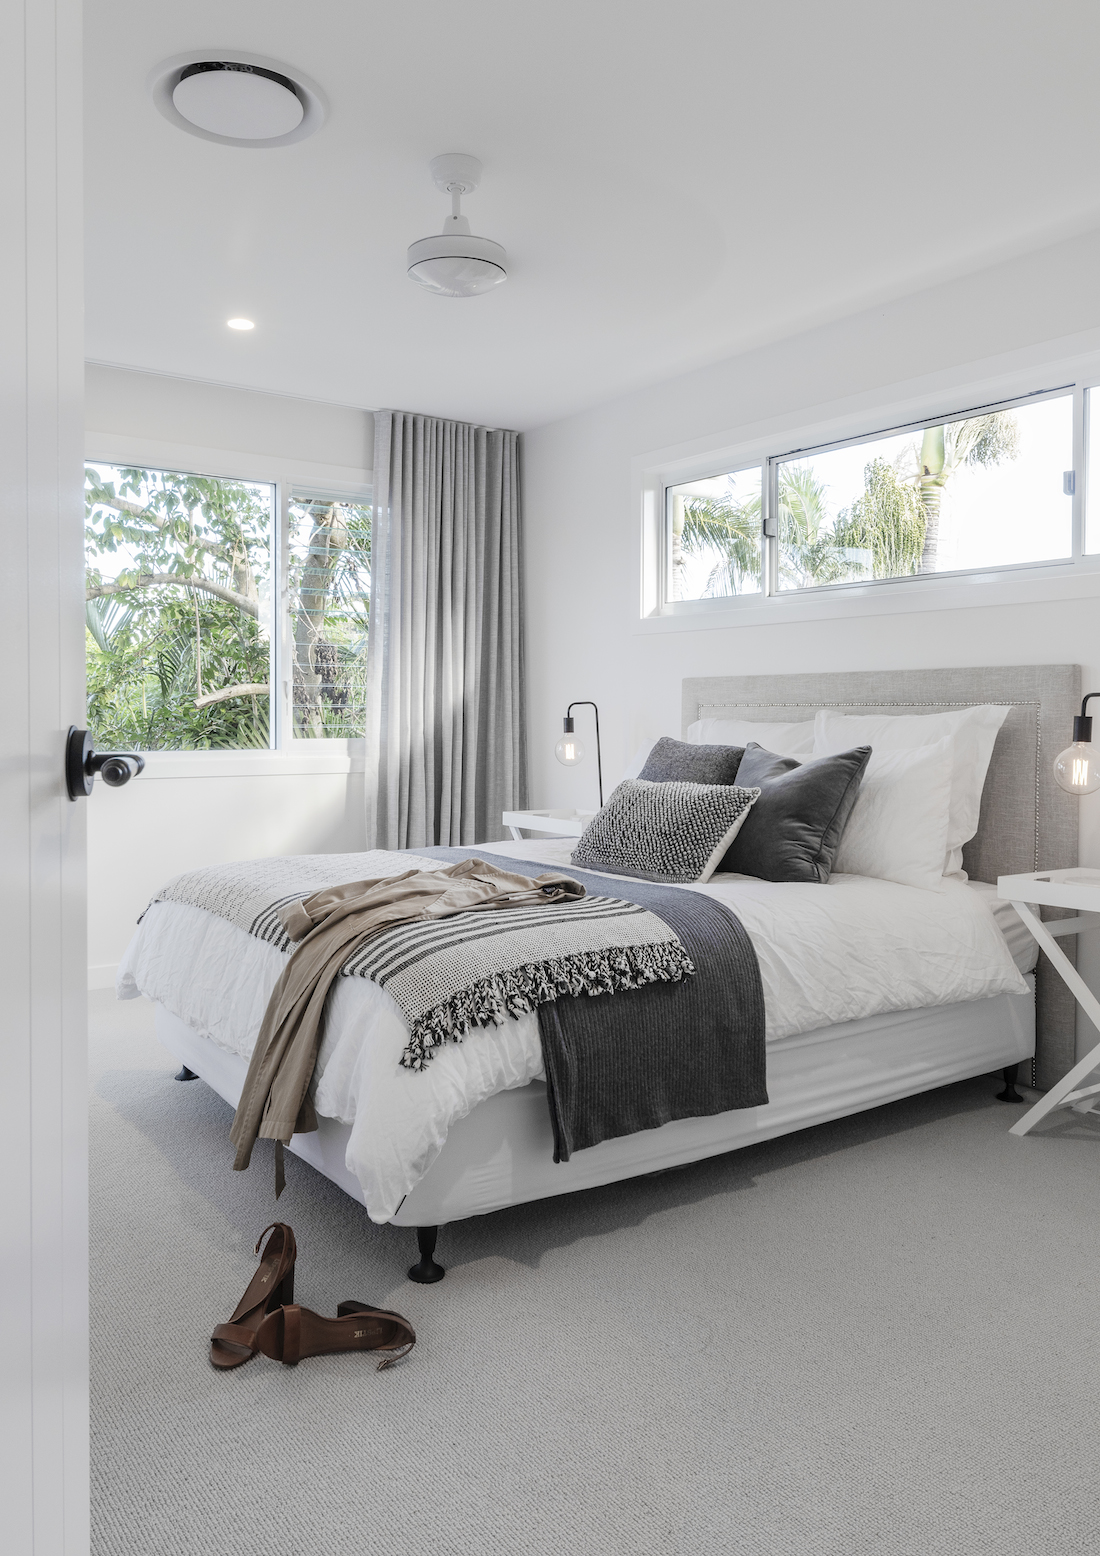 White bedroom with grey accents